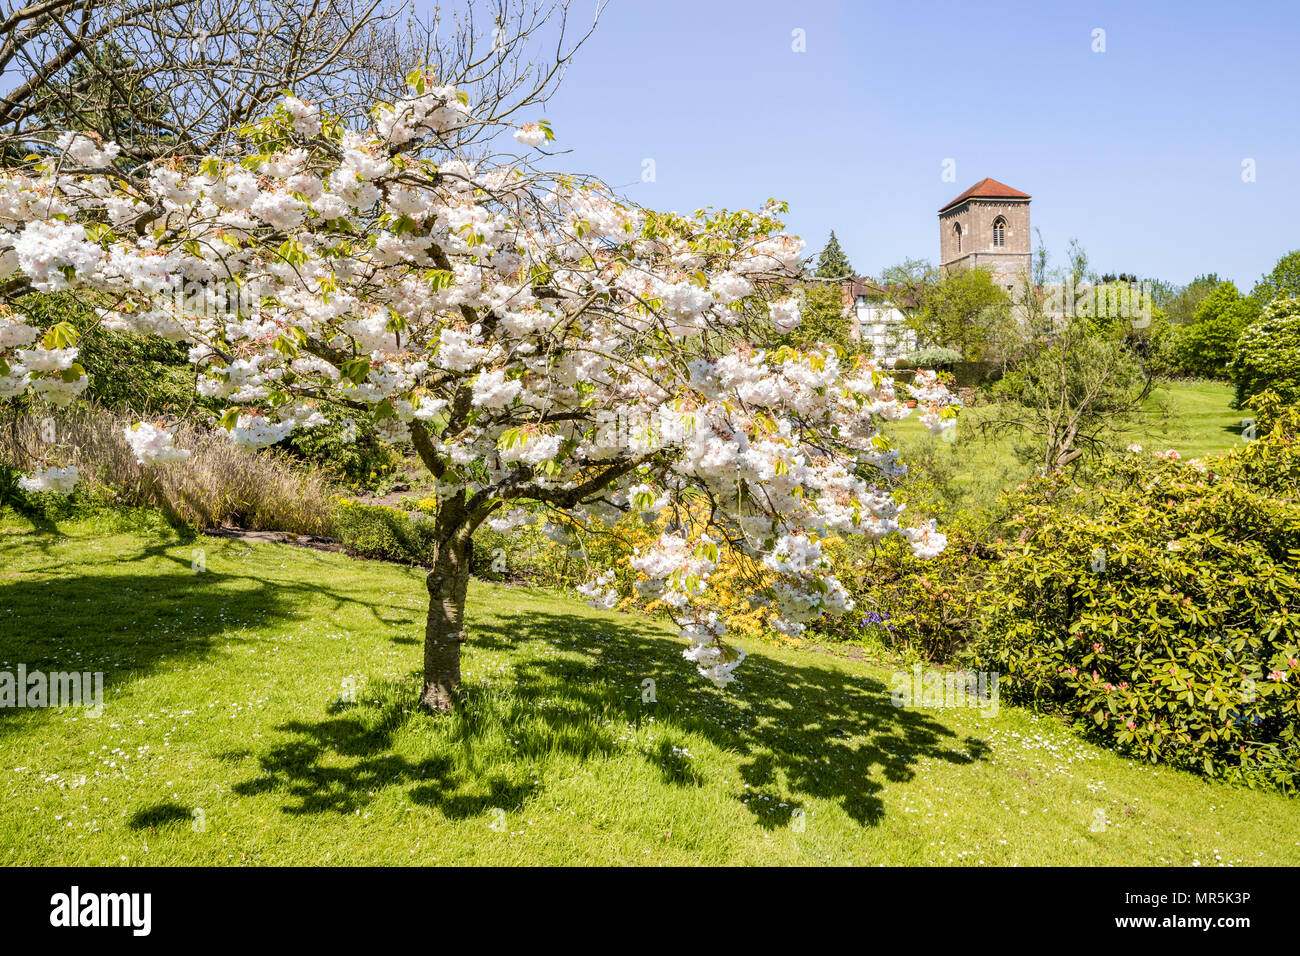 Cherry blossom in the gardens of Little Malvern Court a 15th century Priors Hall at Little Malvern, Worcestershire UK - Stock Image